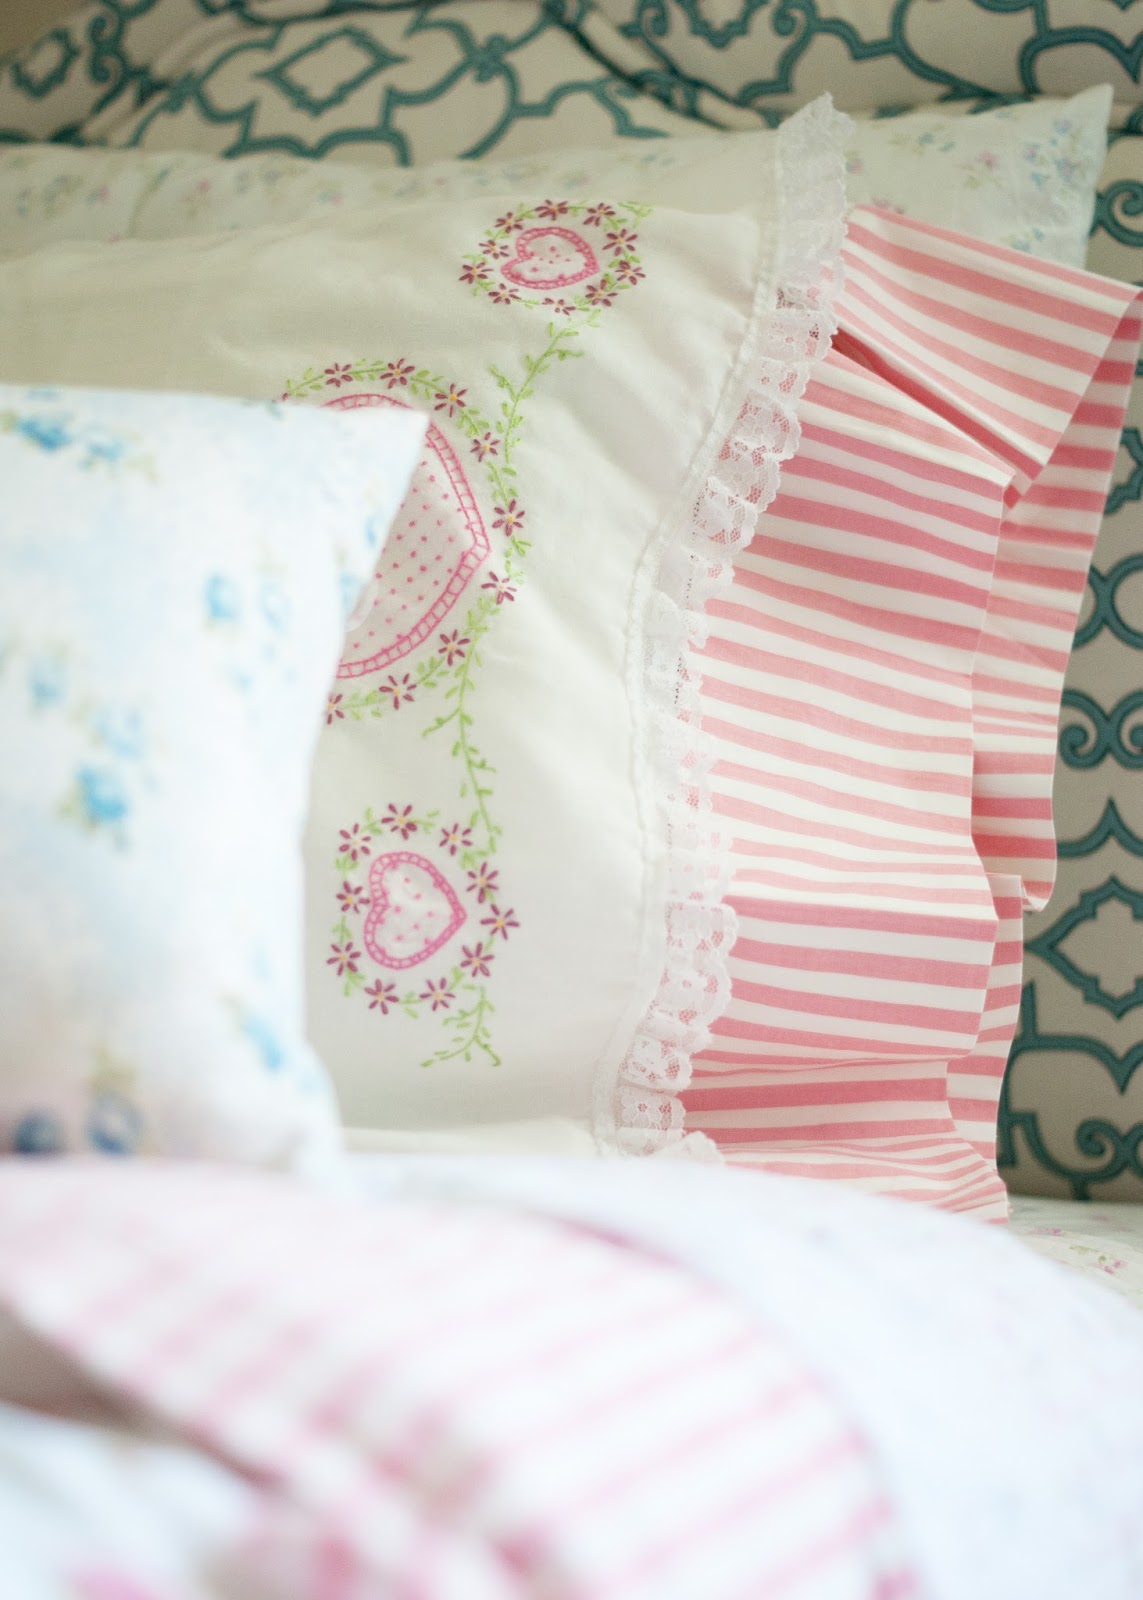 Vintage Linens on DIY Bed